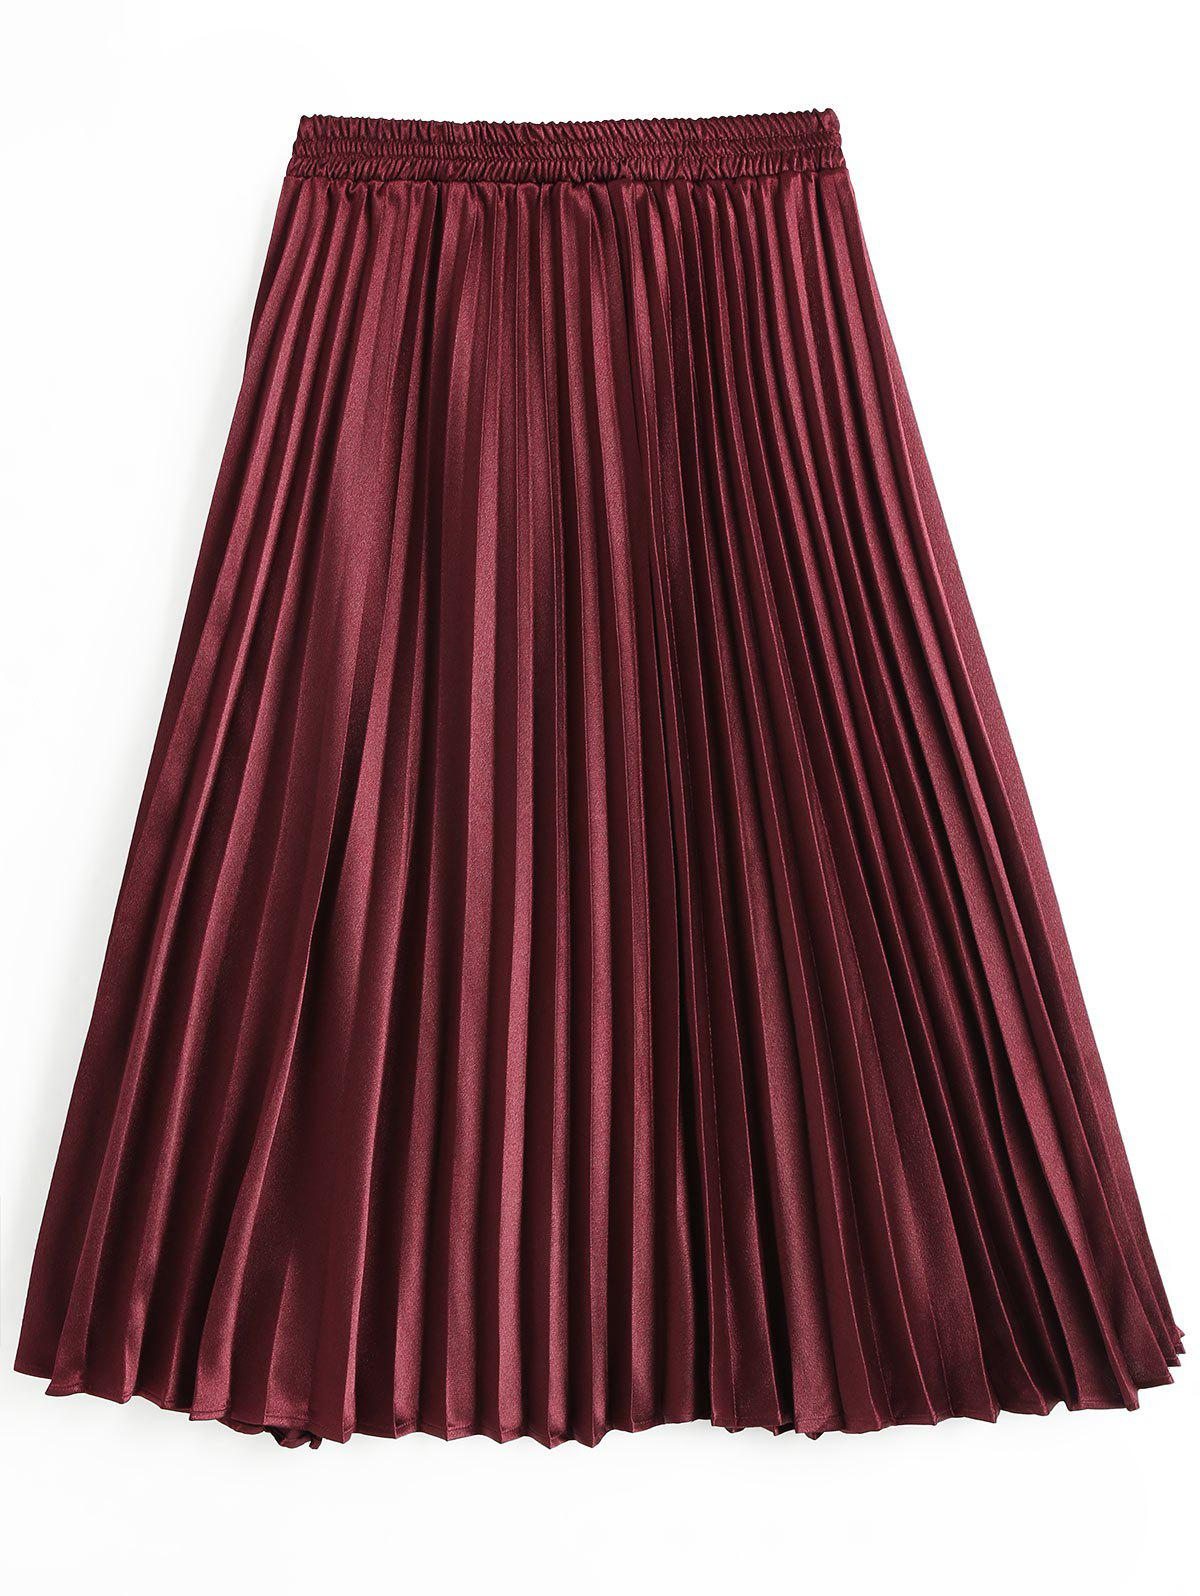 New High Rise Pleated Skirt